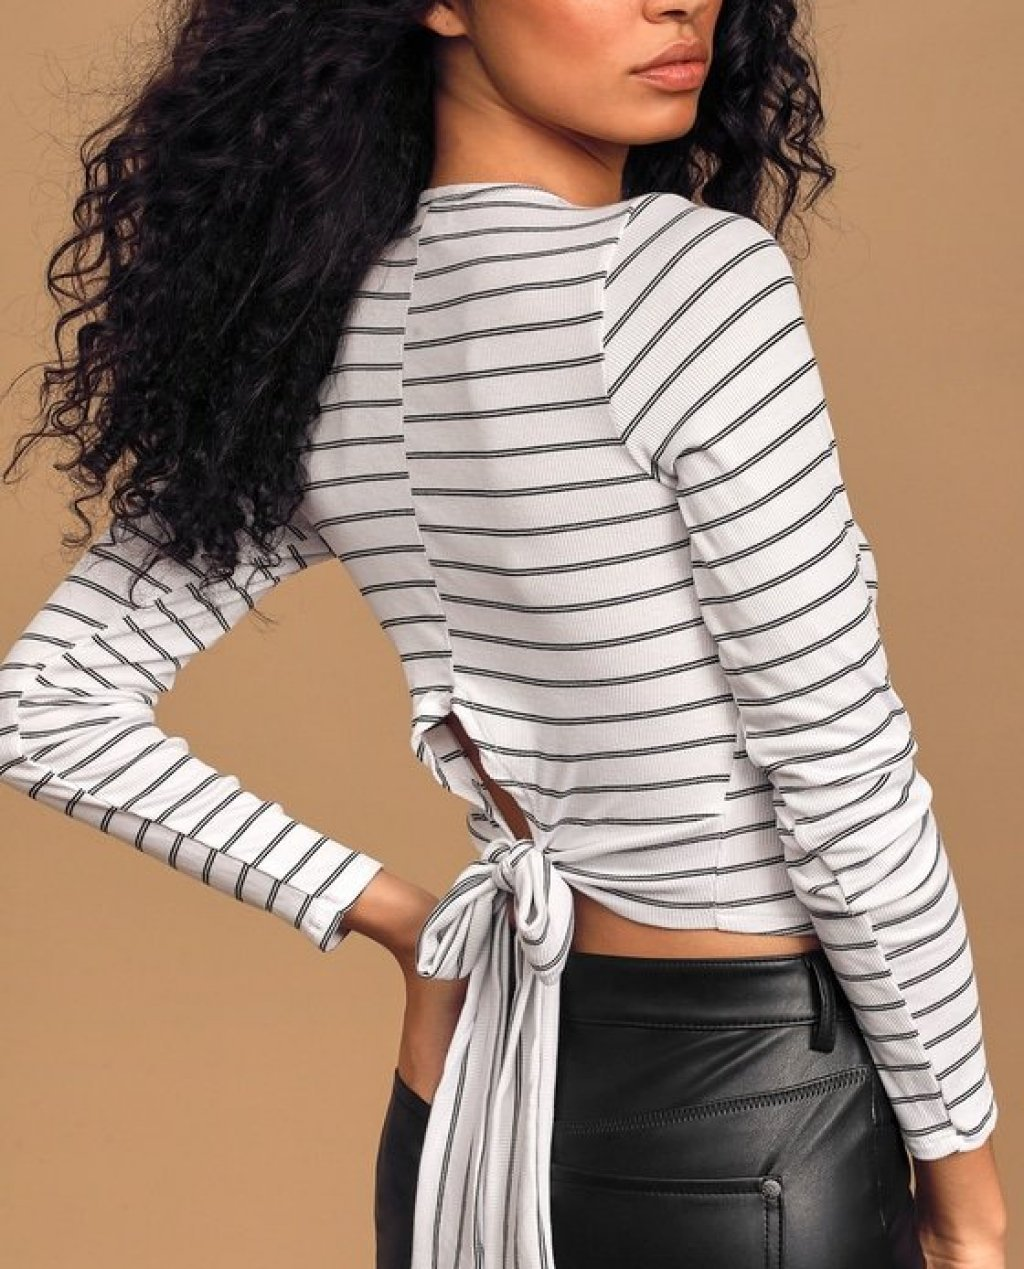 Cannes Black and White Striped Tie-Back Top